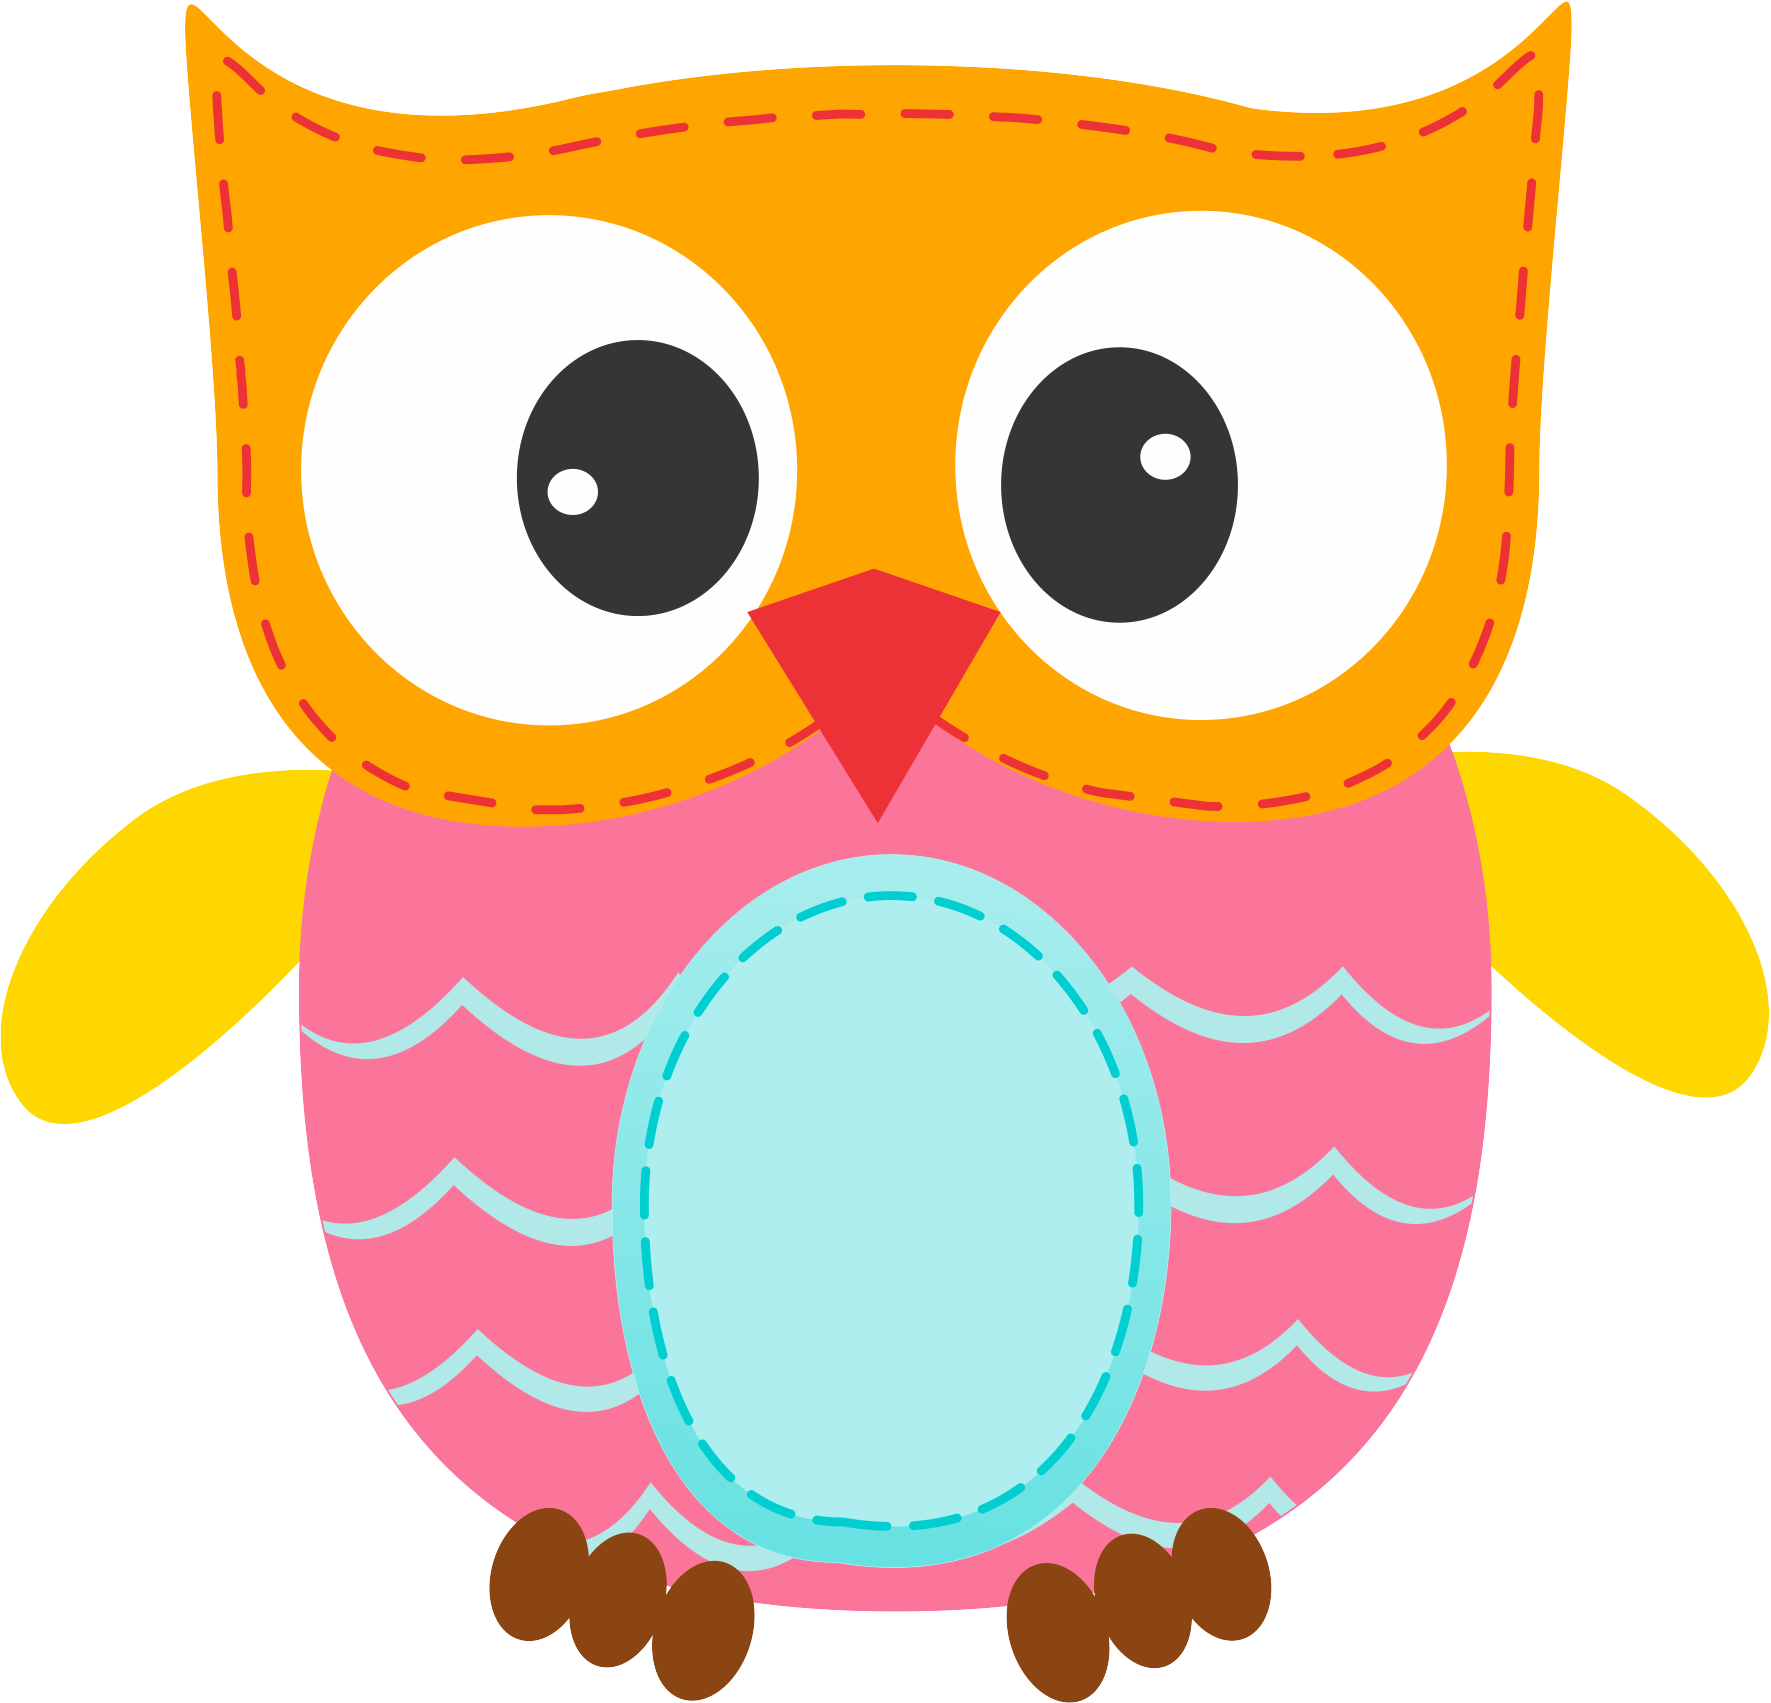 Photo by daniellemoraesfalcao minus. Clipart cupcake owl